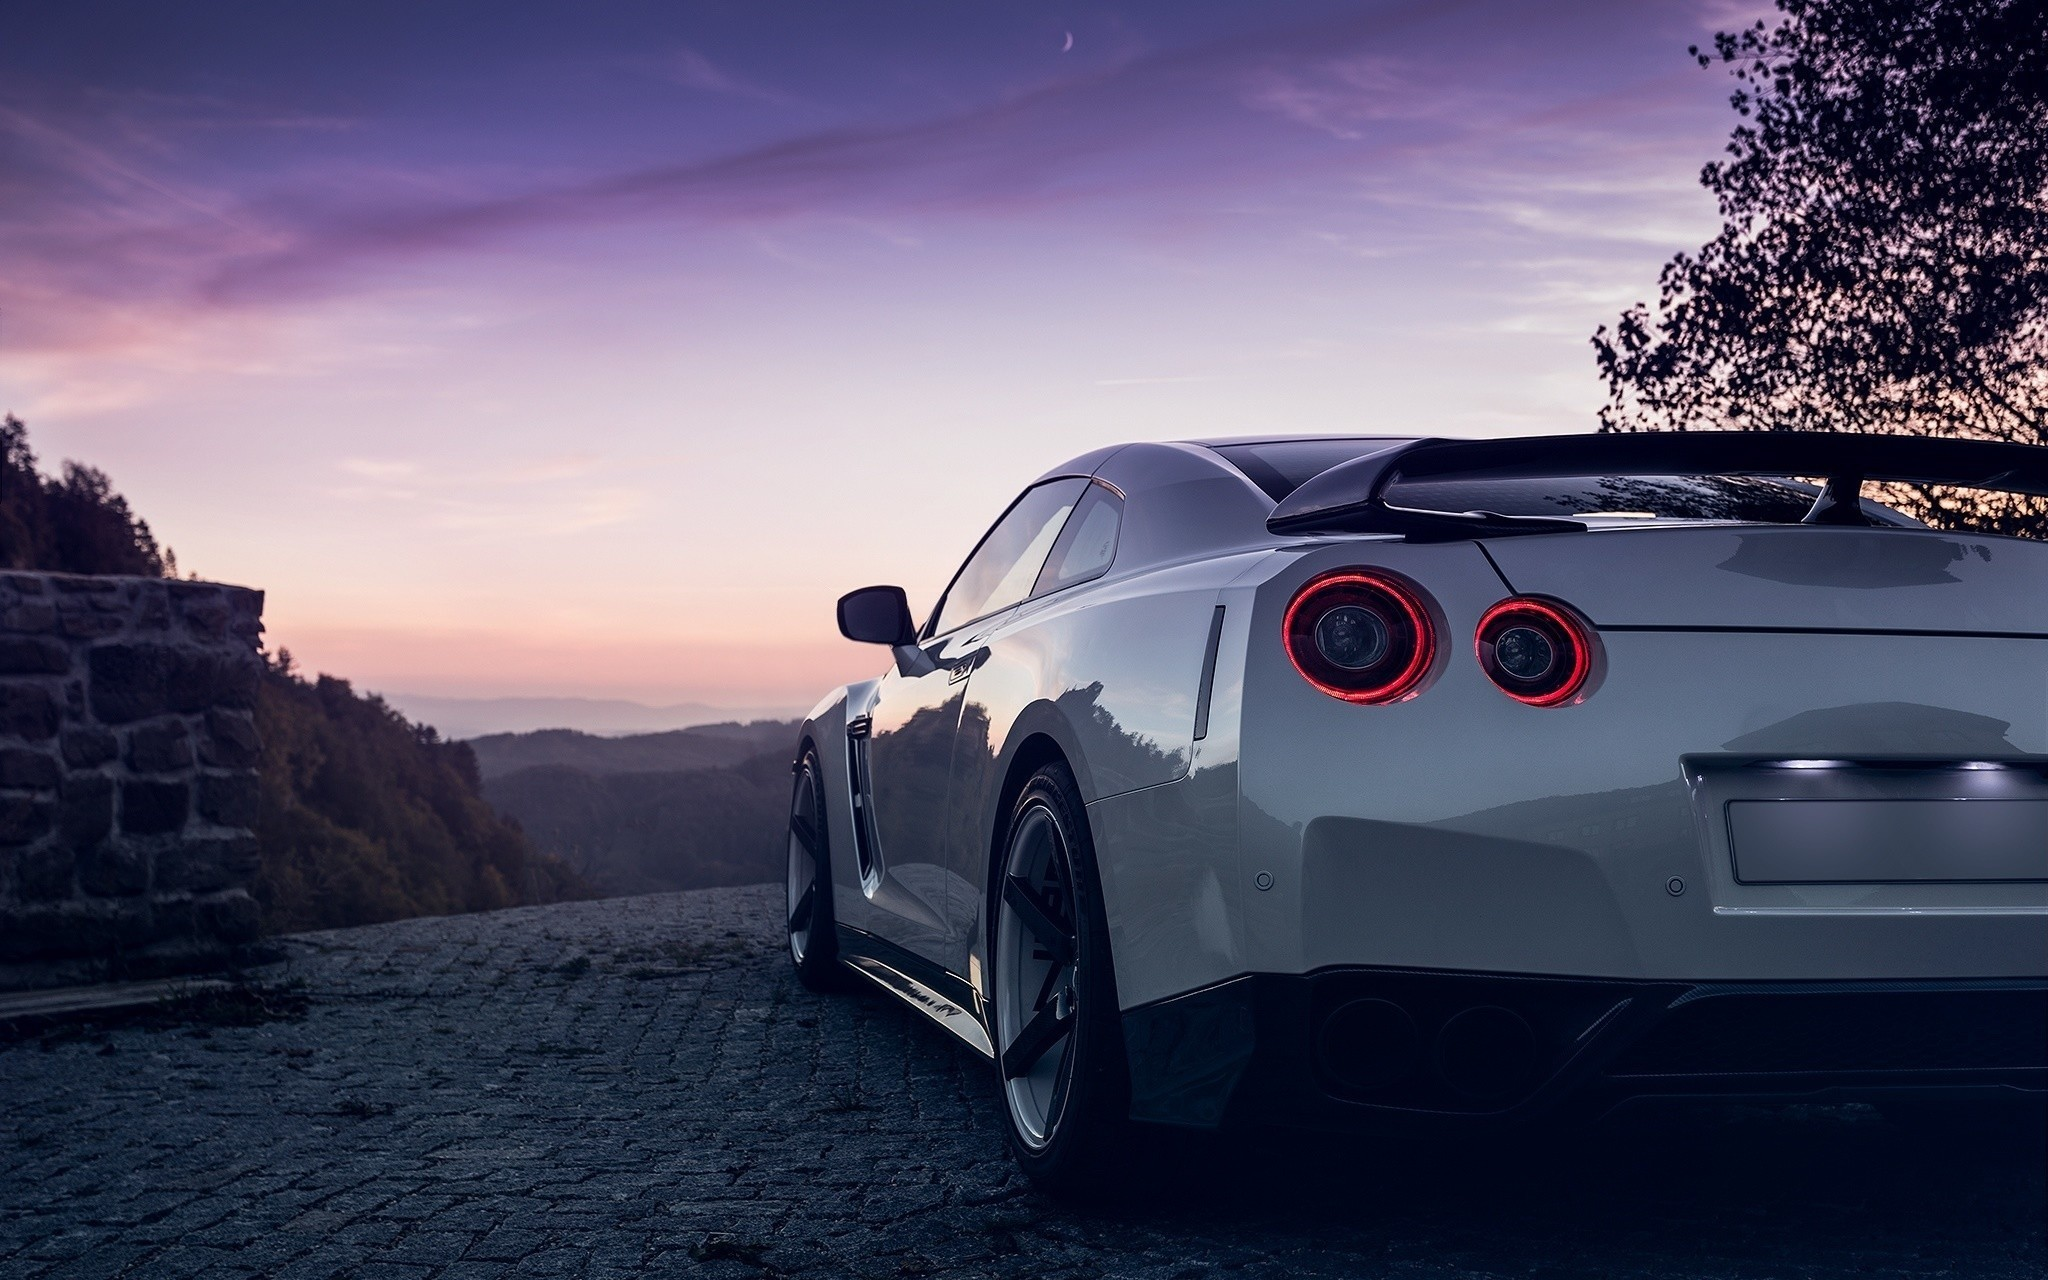 Nissan GTR R35 white car side view wallpaper 2048x1280